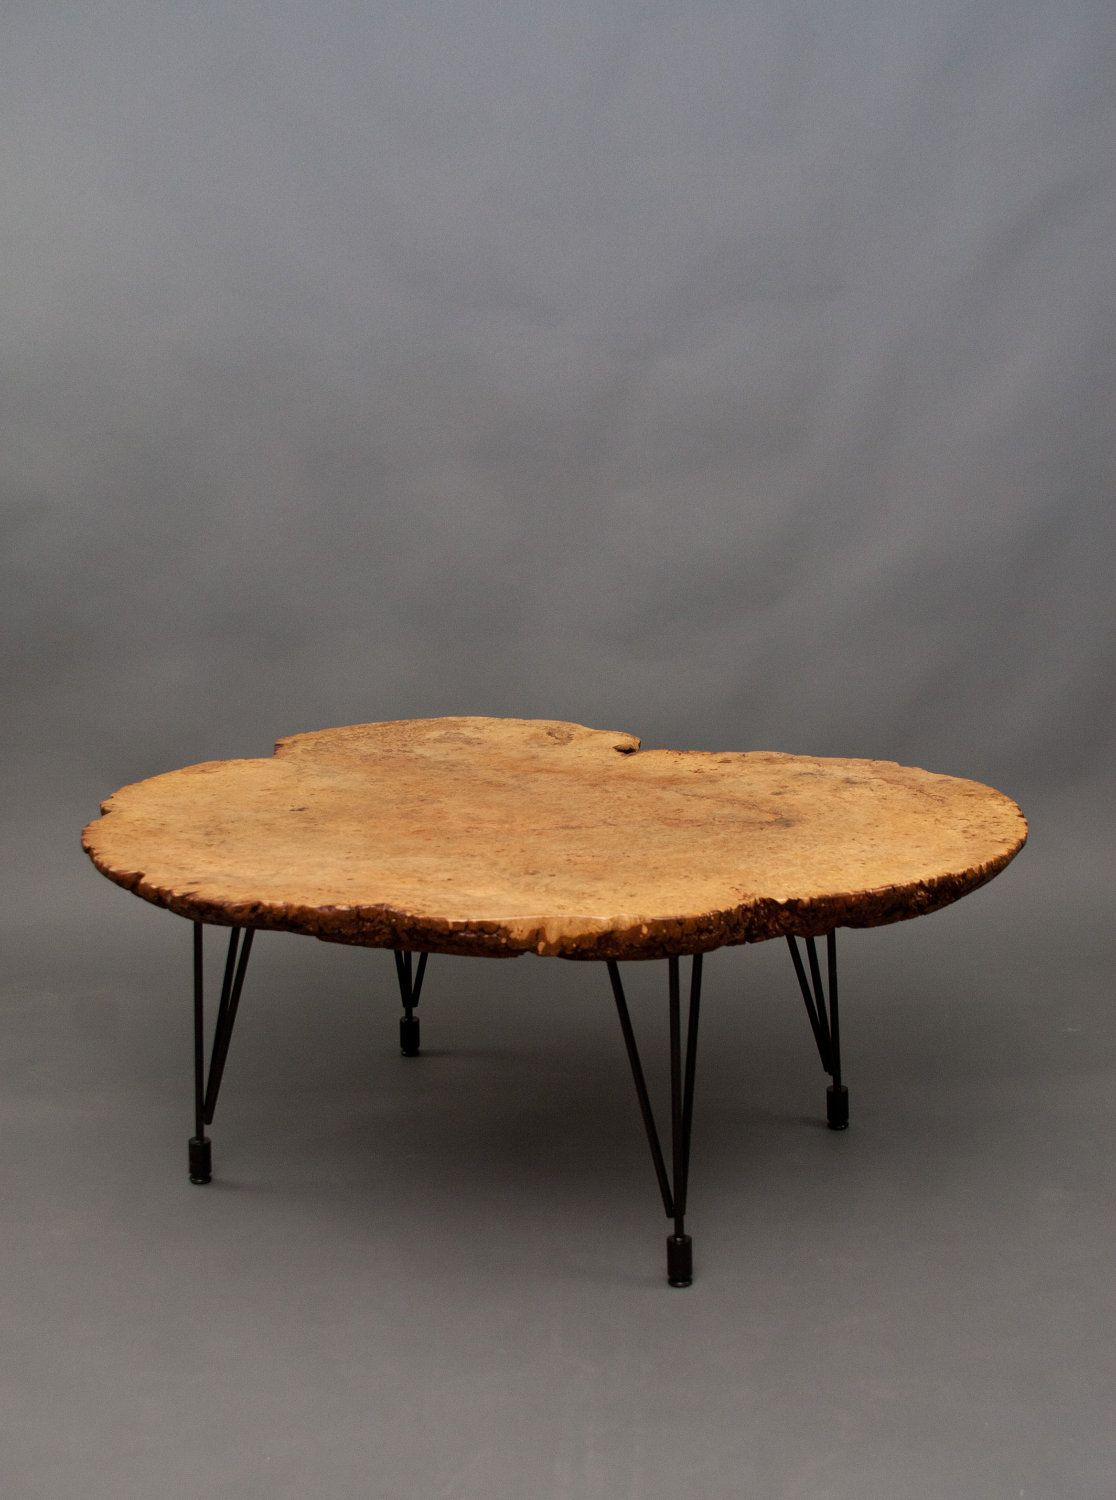 39 Coffee Tables Ideas Coffee Table Round Coffee Table Furniture